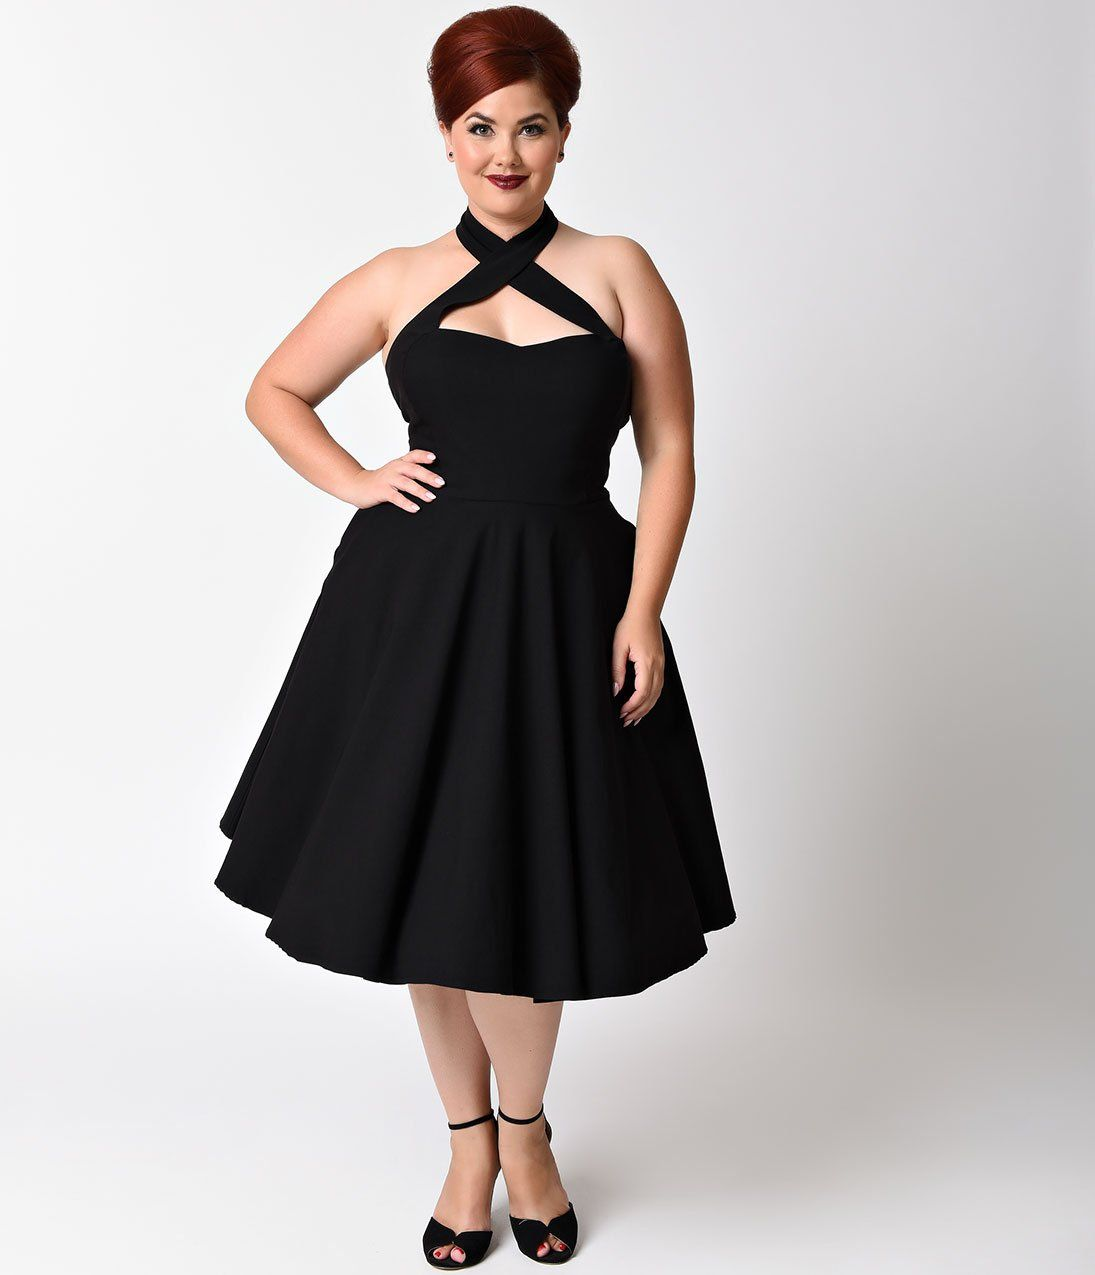 1950s Plus Size Fashion and Clothing History | Retro 1940s and 1950s ...